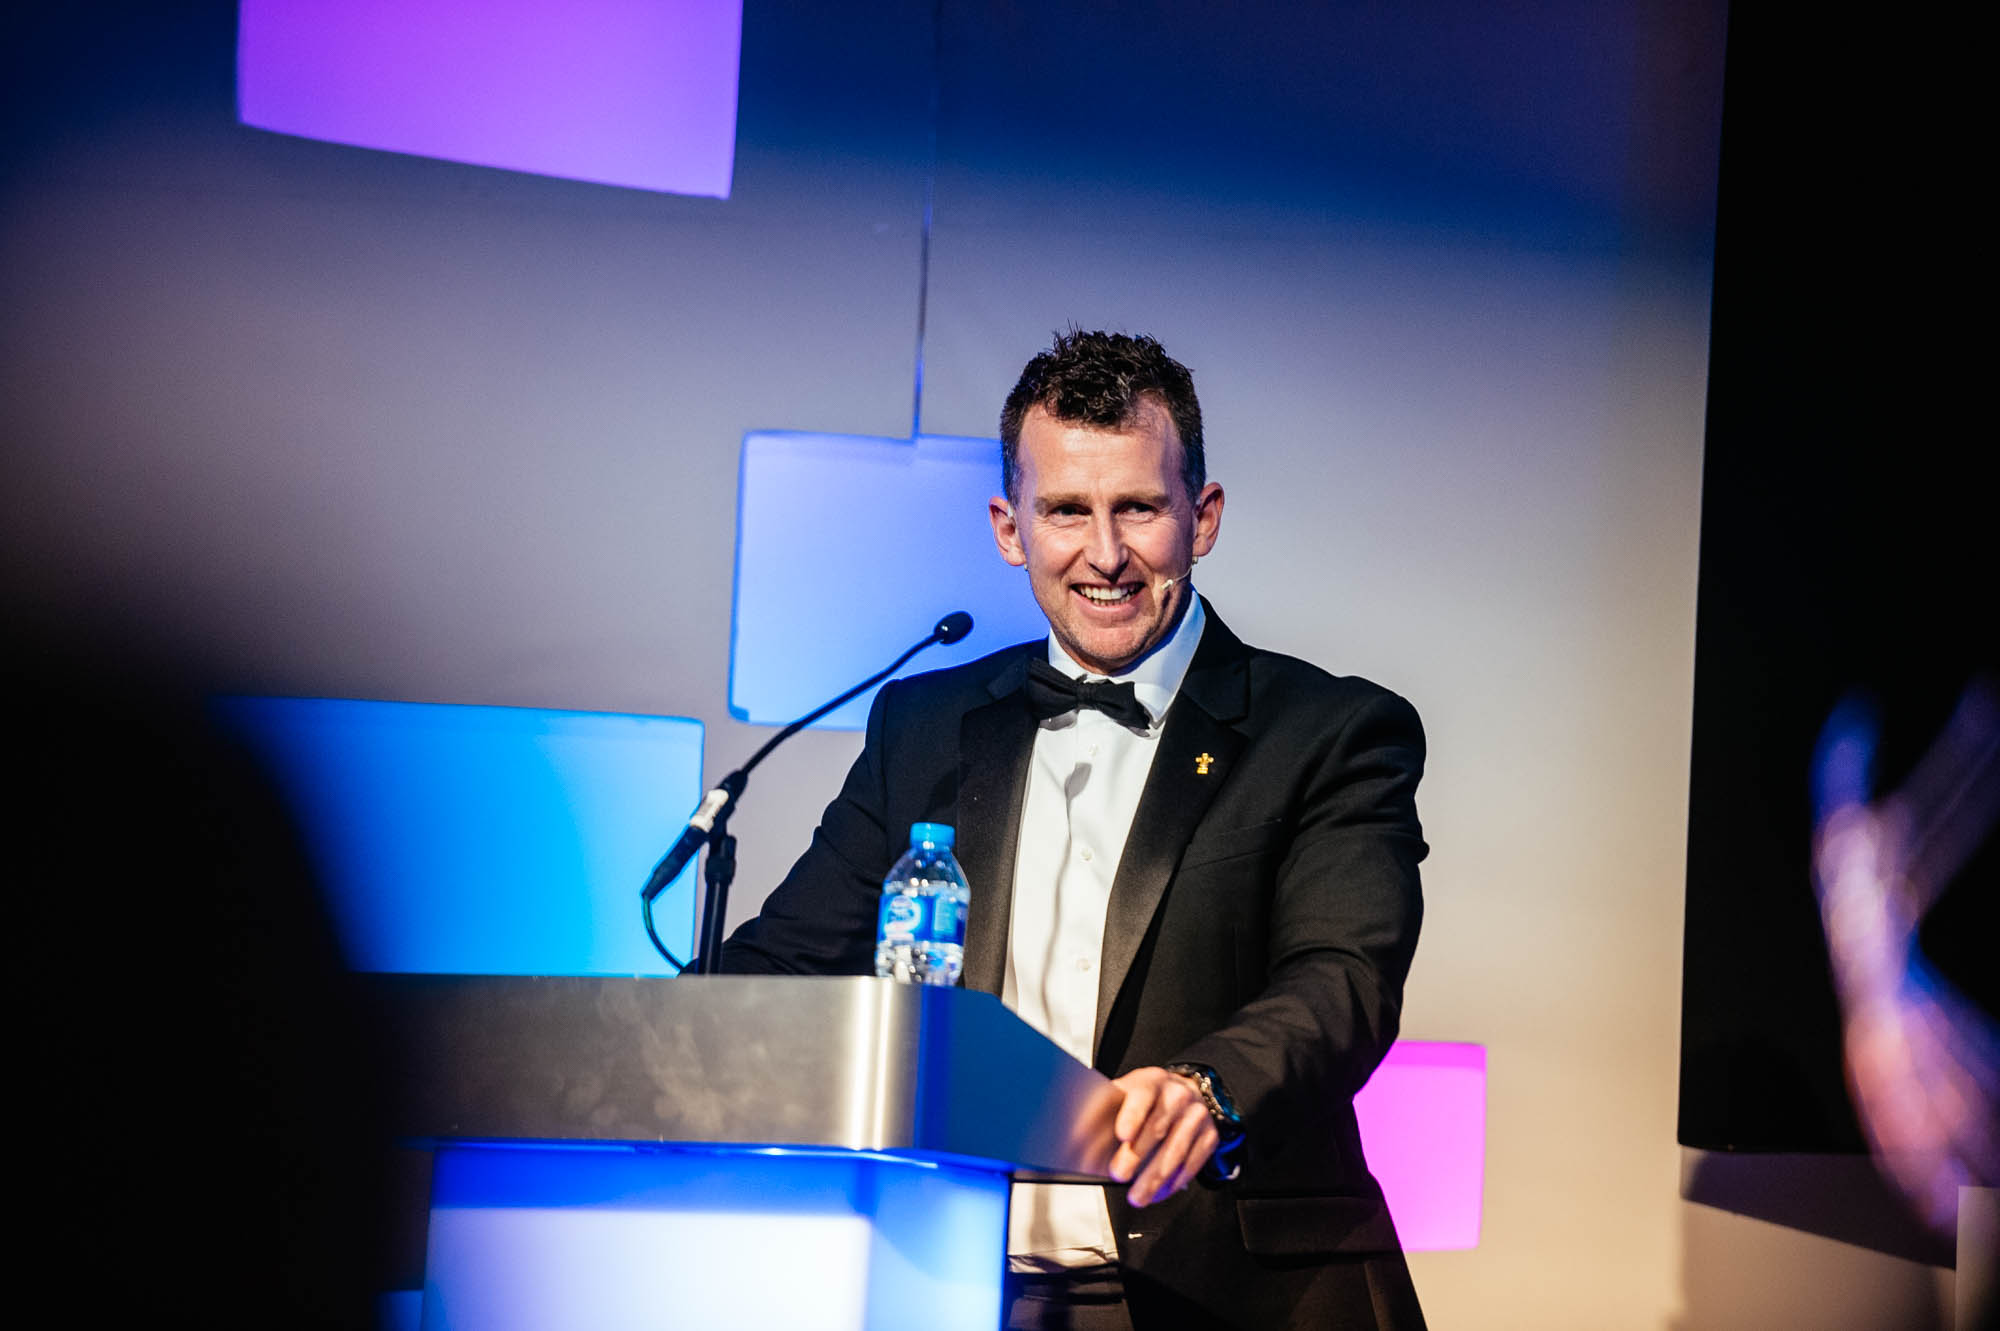 A photo of international rugby referee Nigel Owens at the Cardiff Life Awards in march 2017